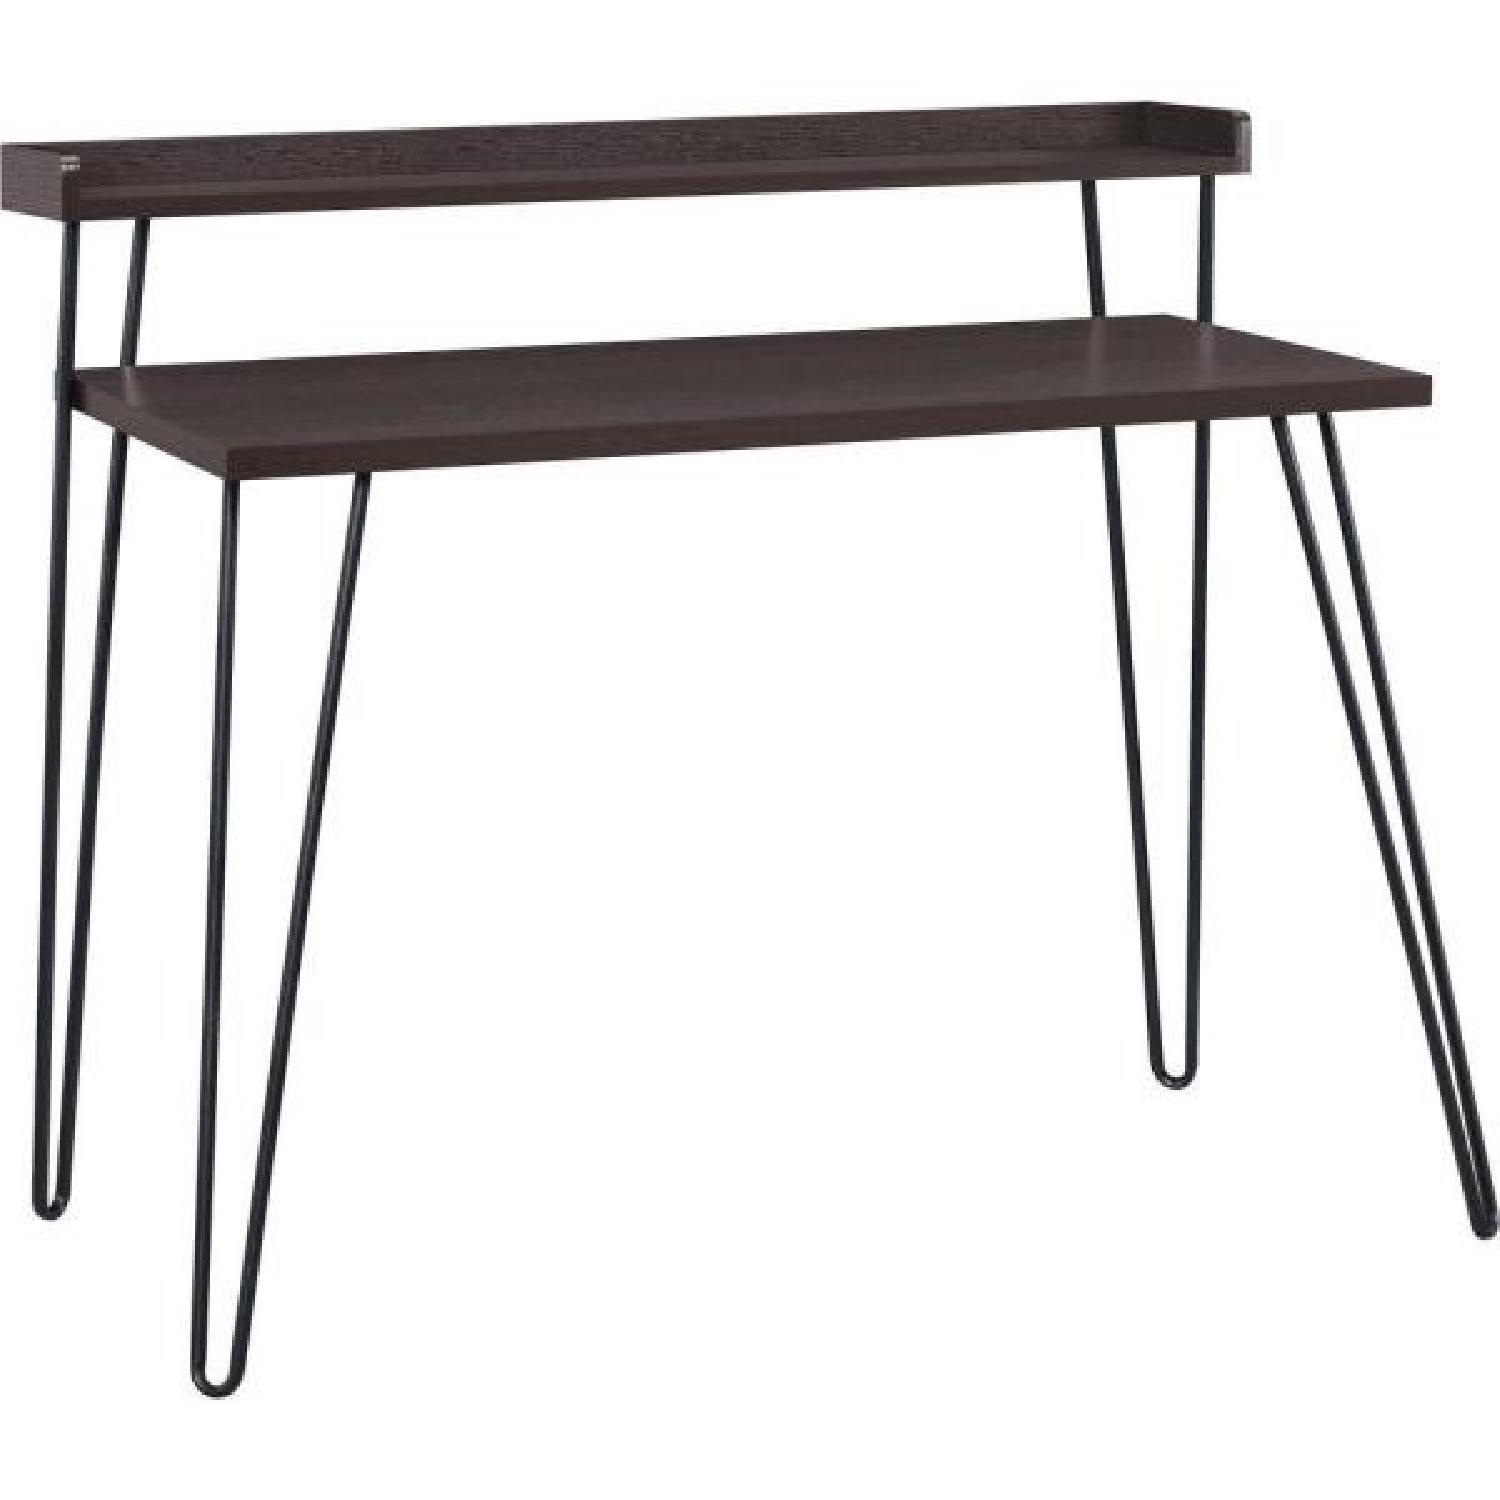 Ameriwood Industries Hairpin Writing Desk with Riser - image-0